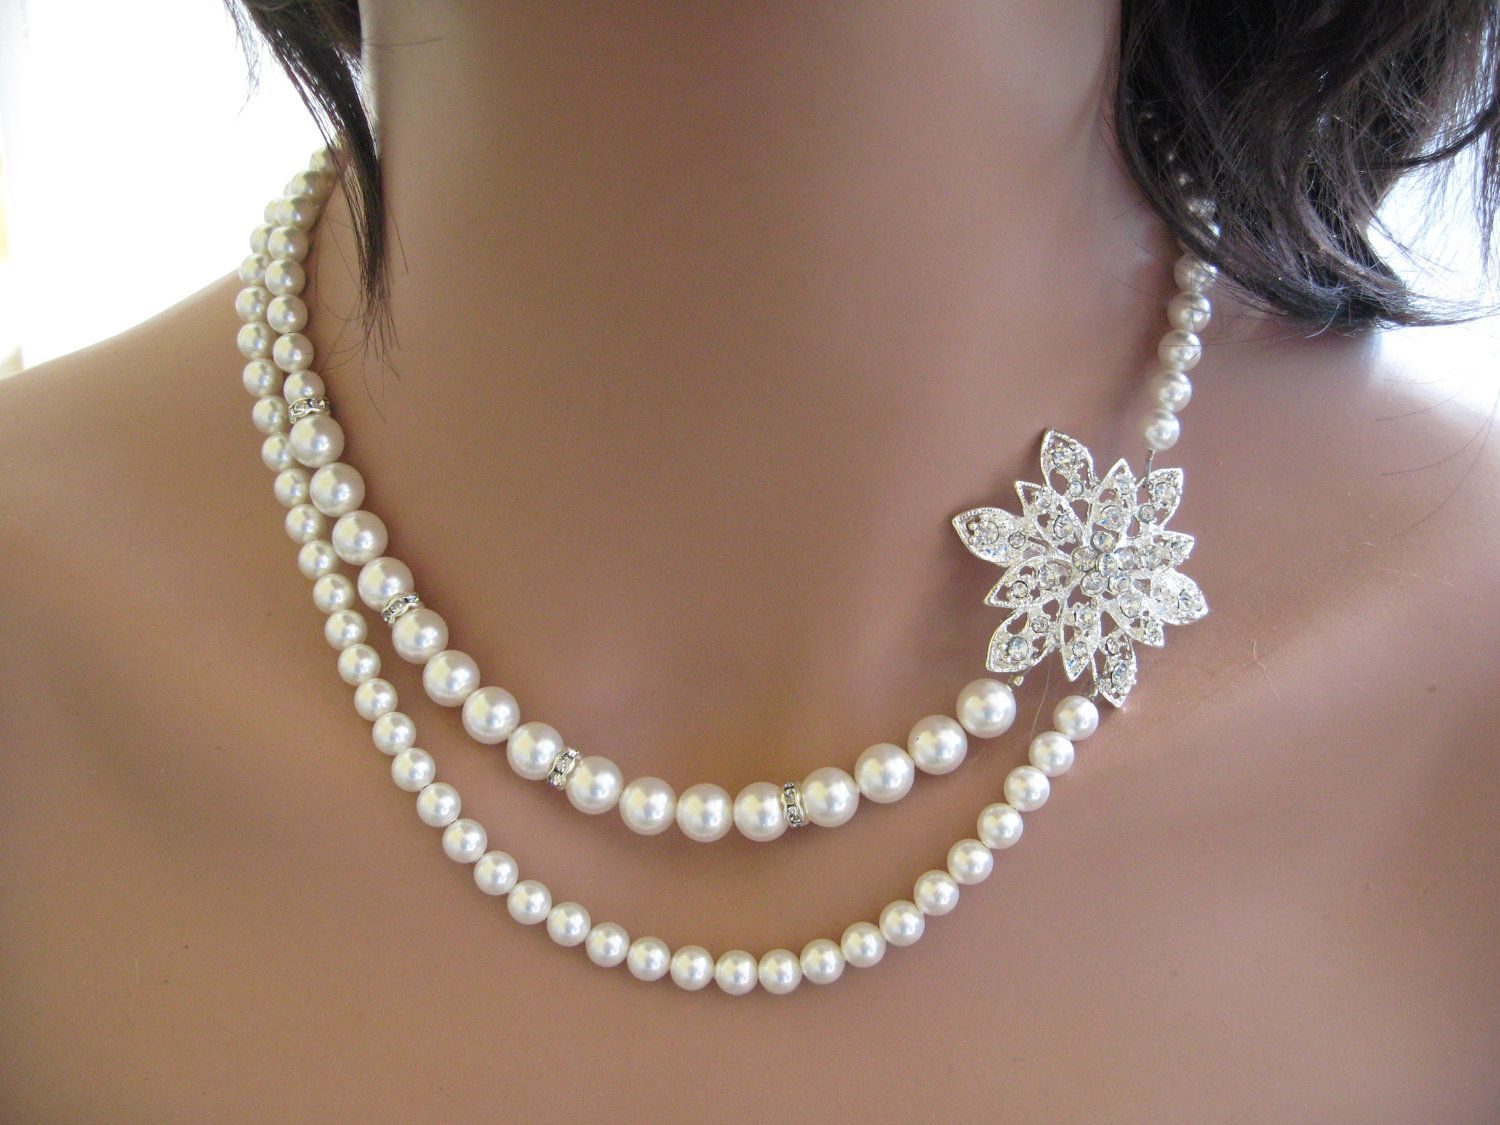 Vintage Inspired Swarovski Pearl And Crystal Bridal Double Strand Pearl  Necklace With Flower Rhinestone Brooch Bridal